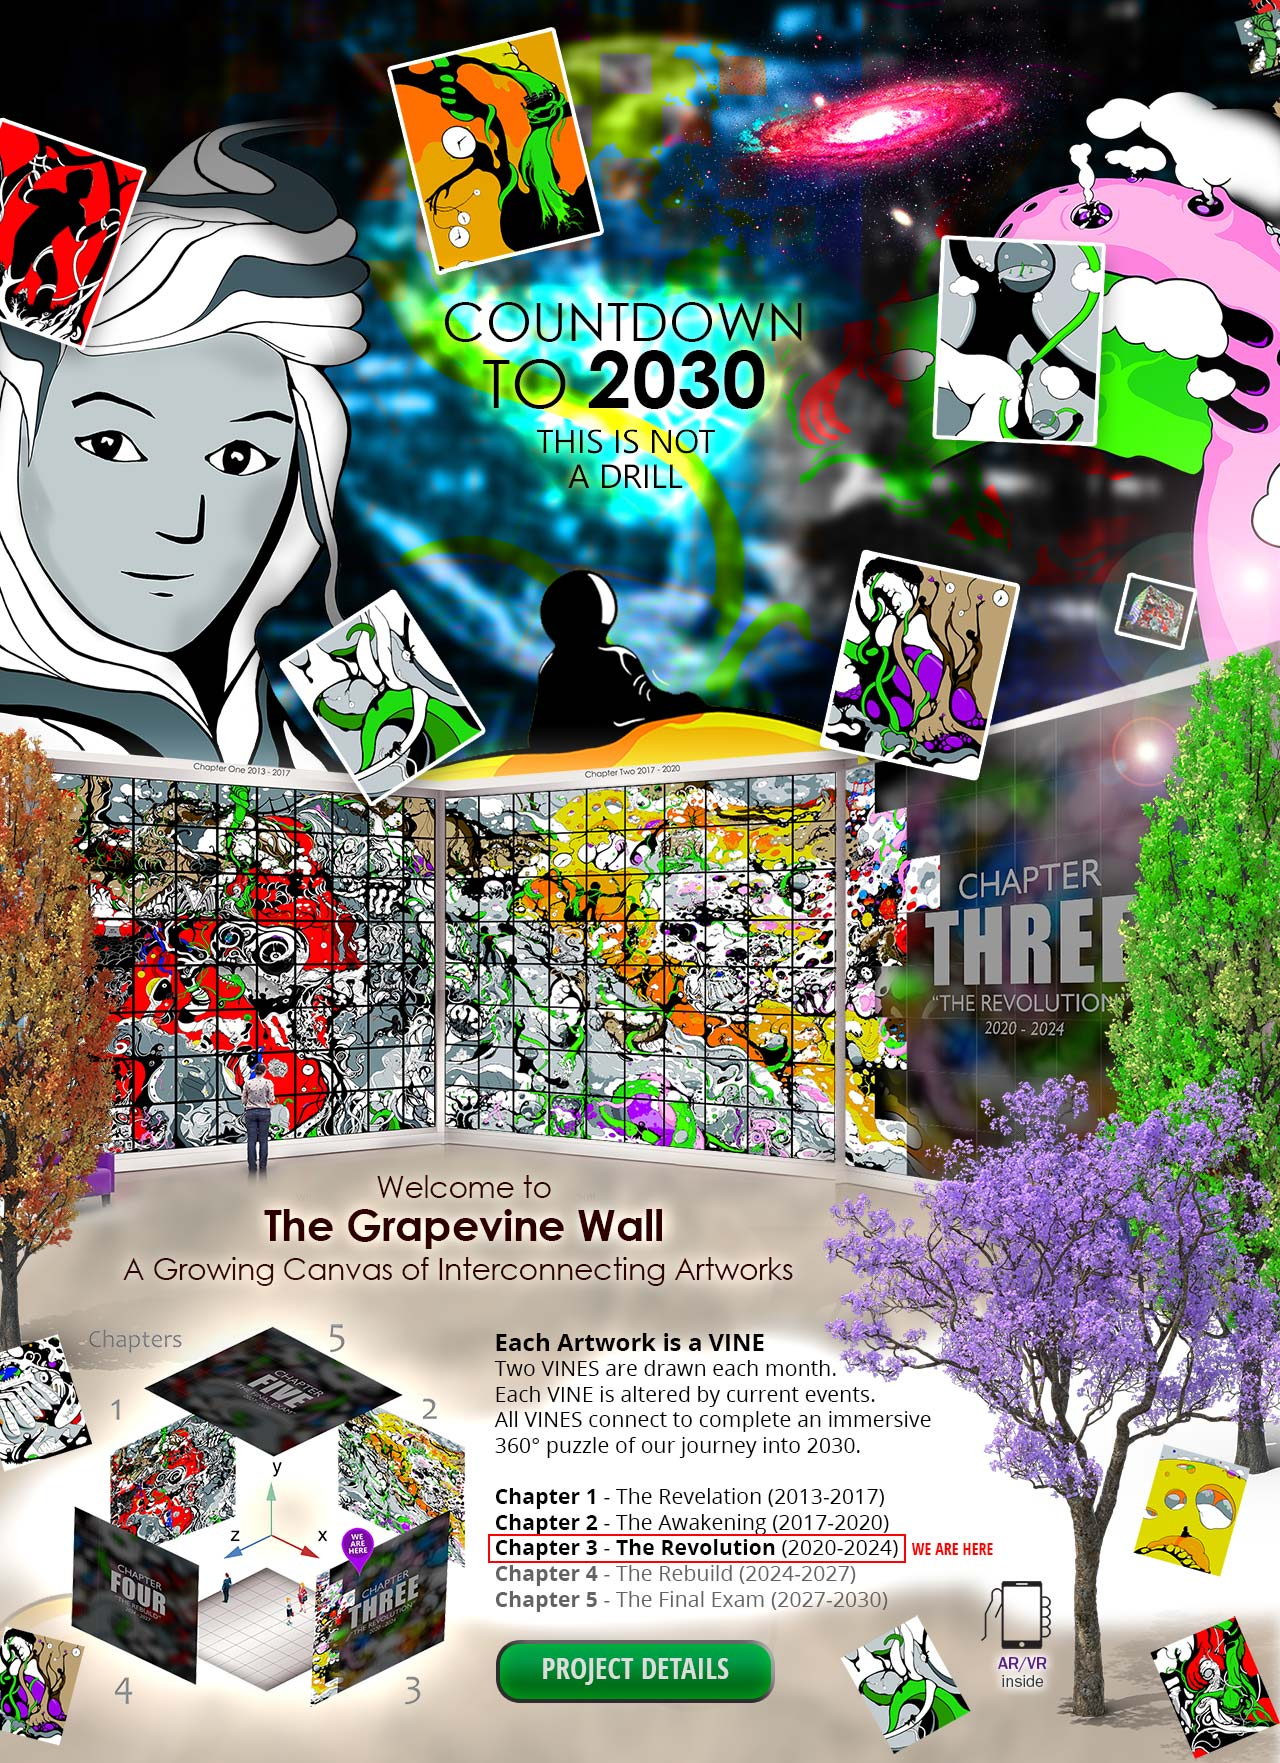 Grapevinewall-home-header-02